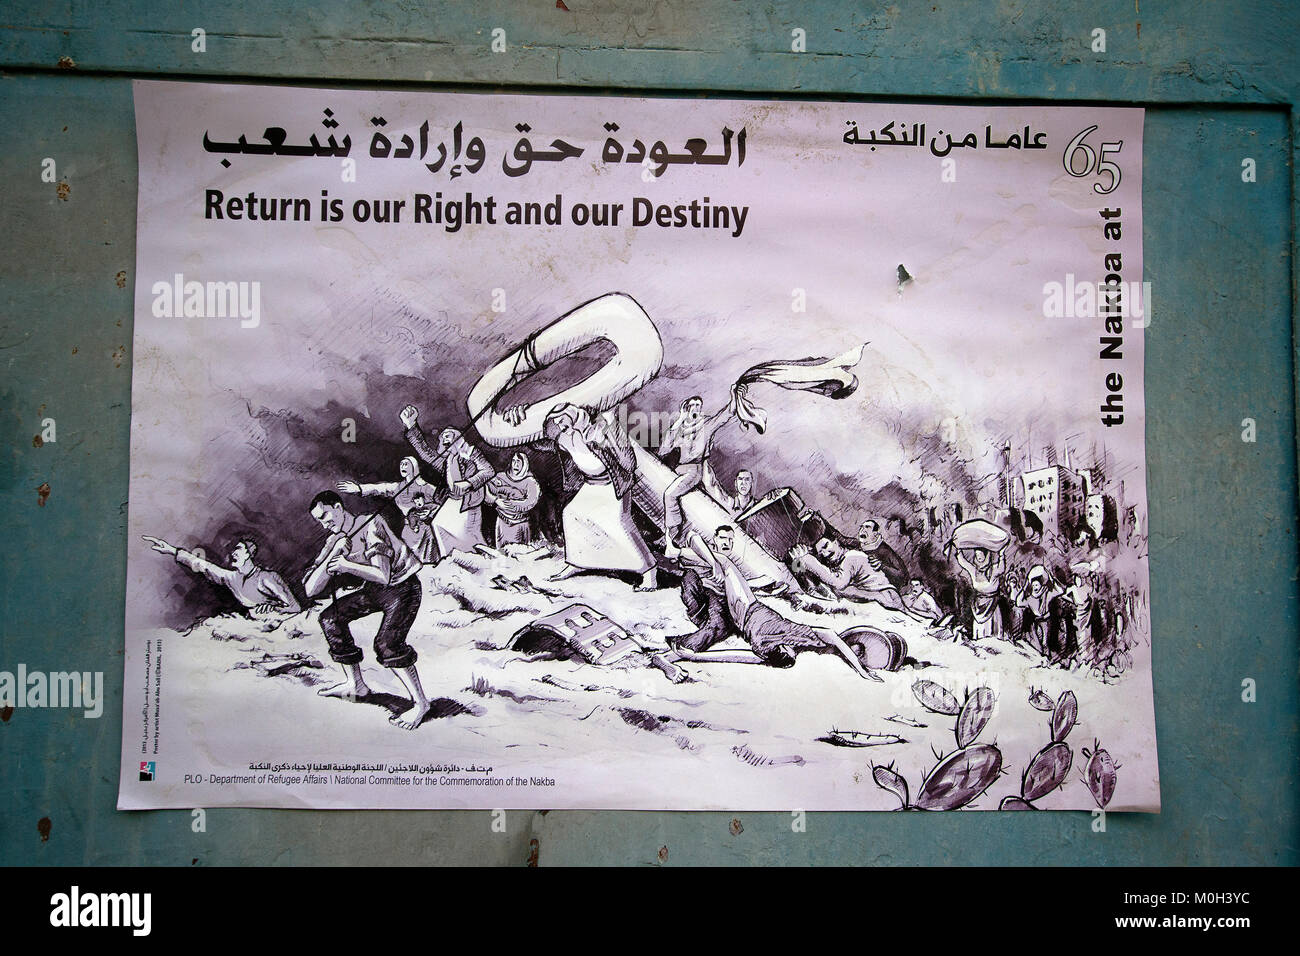 Poster commemorating the recurrence of the Nakba (Palestinian catastrophe) or the exodus of the Palestinian Arab - Stock Image